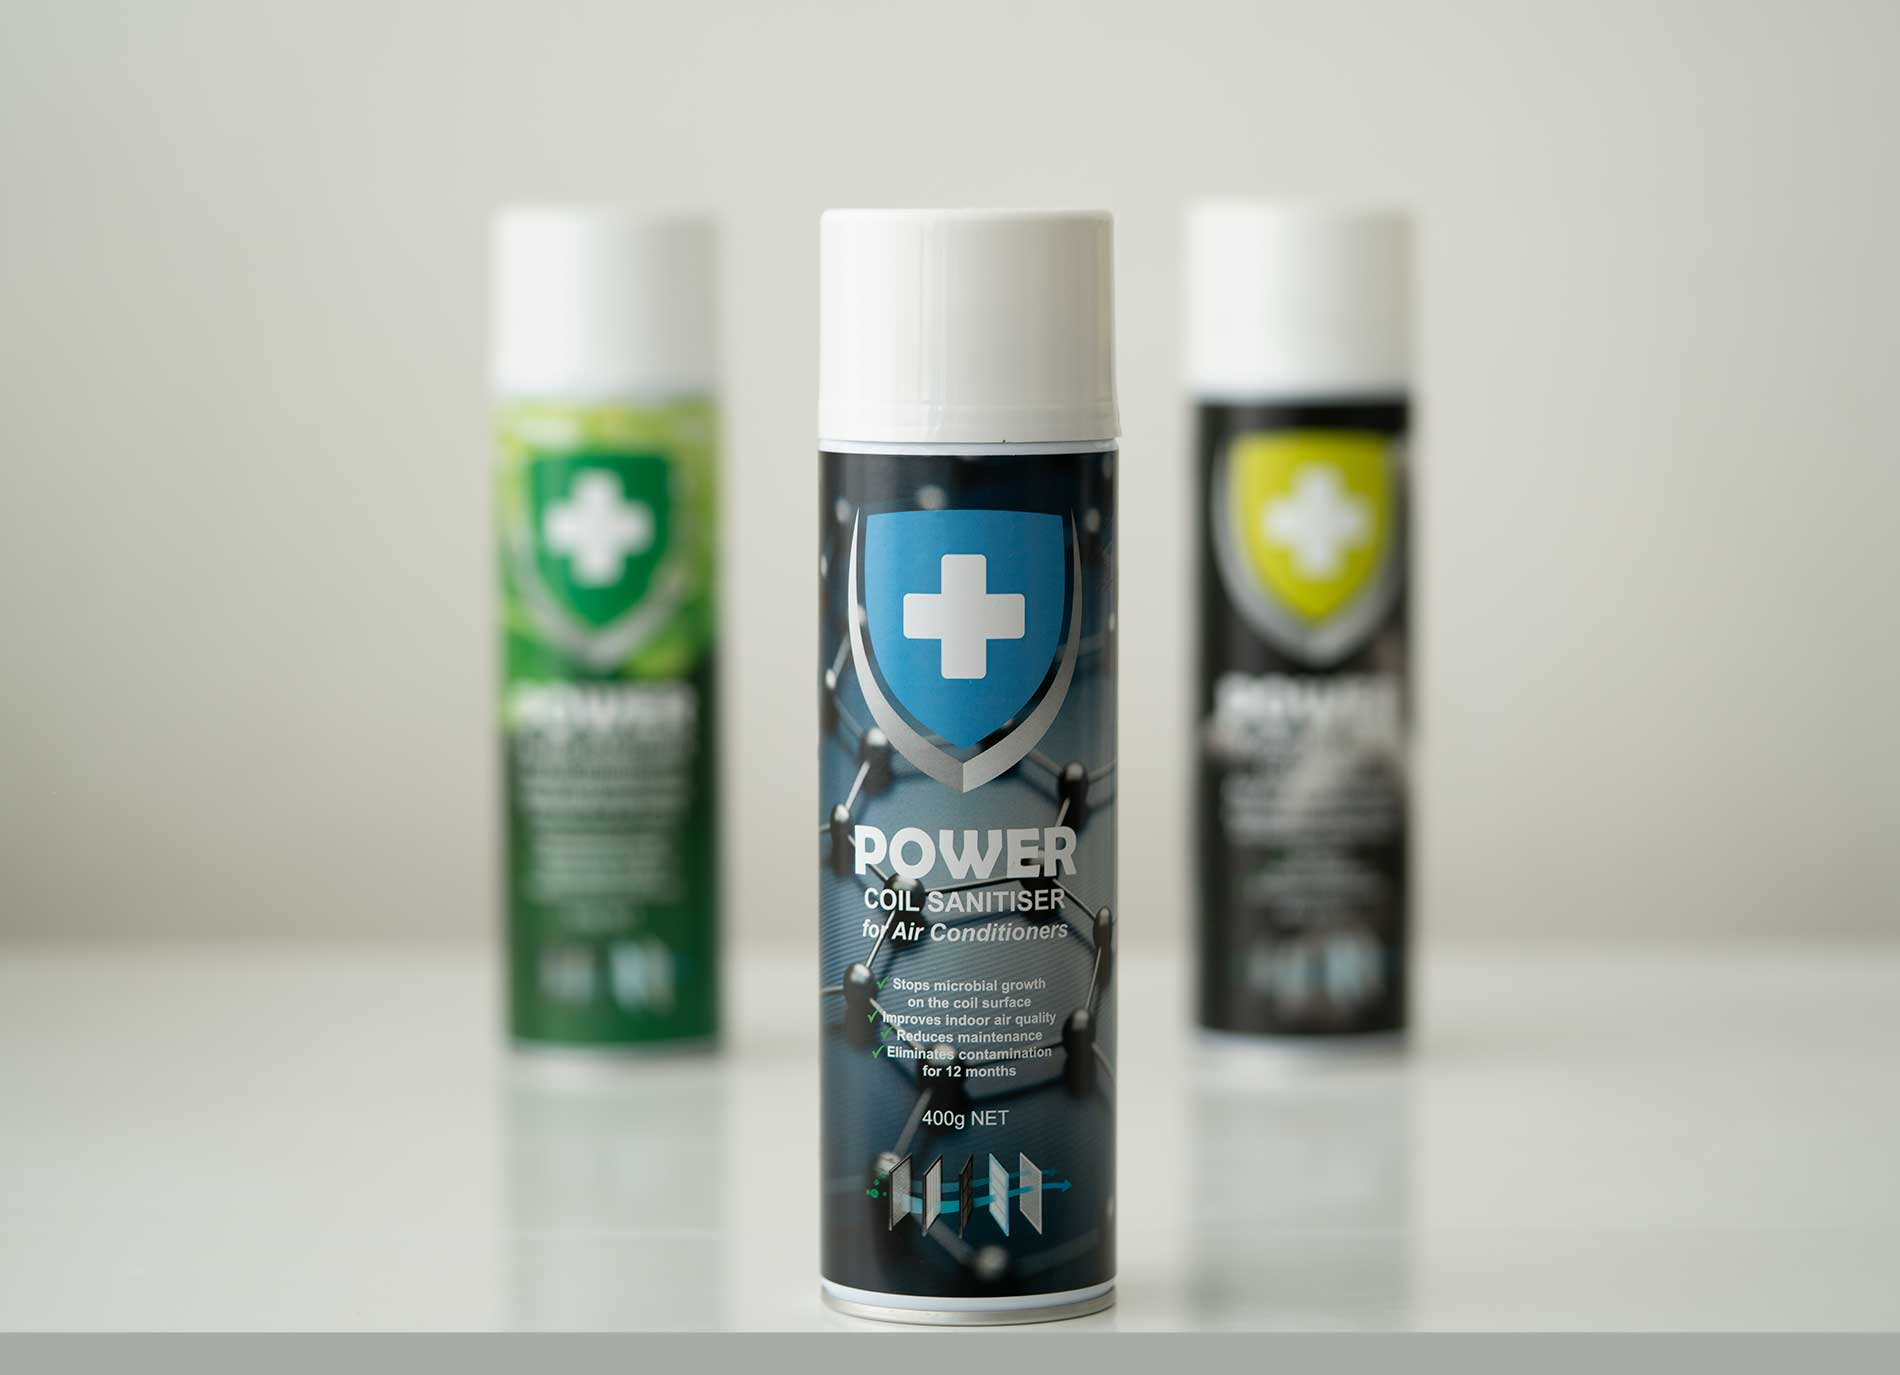 The Virus Shop - Power Coil Sanitiser for Air Conditioners